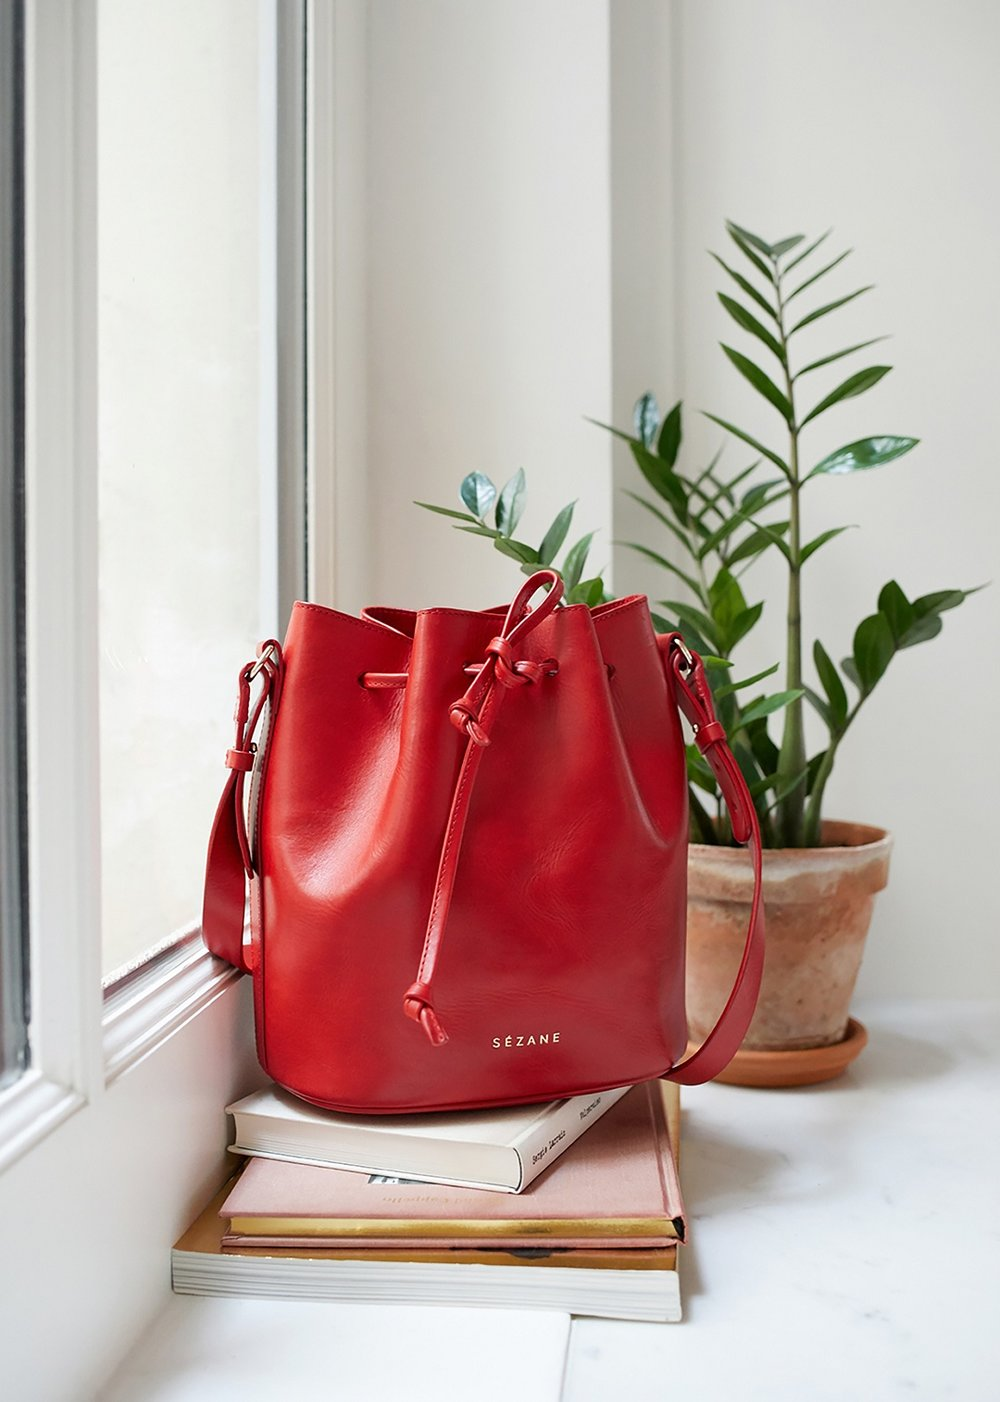 Sezane Farrow Bag $280